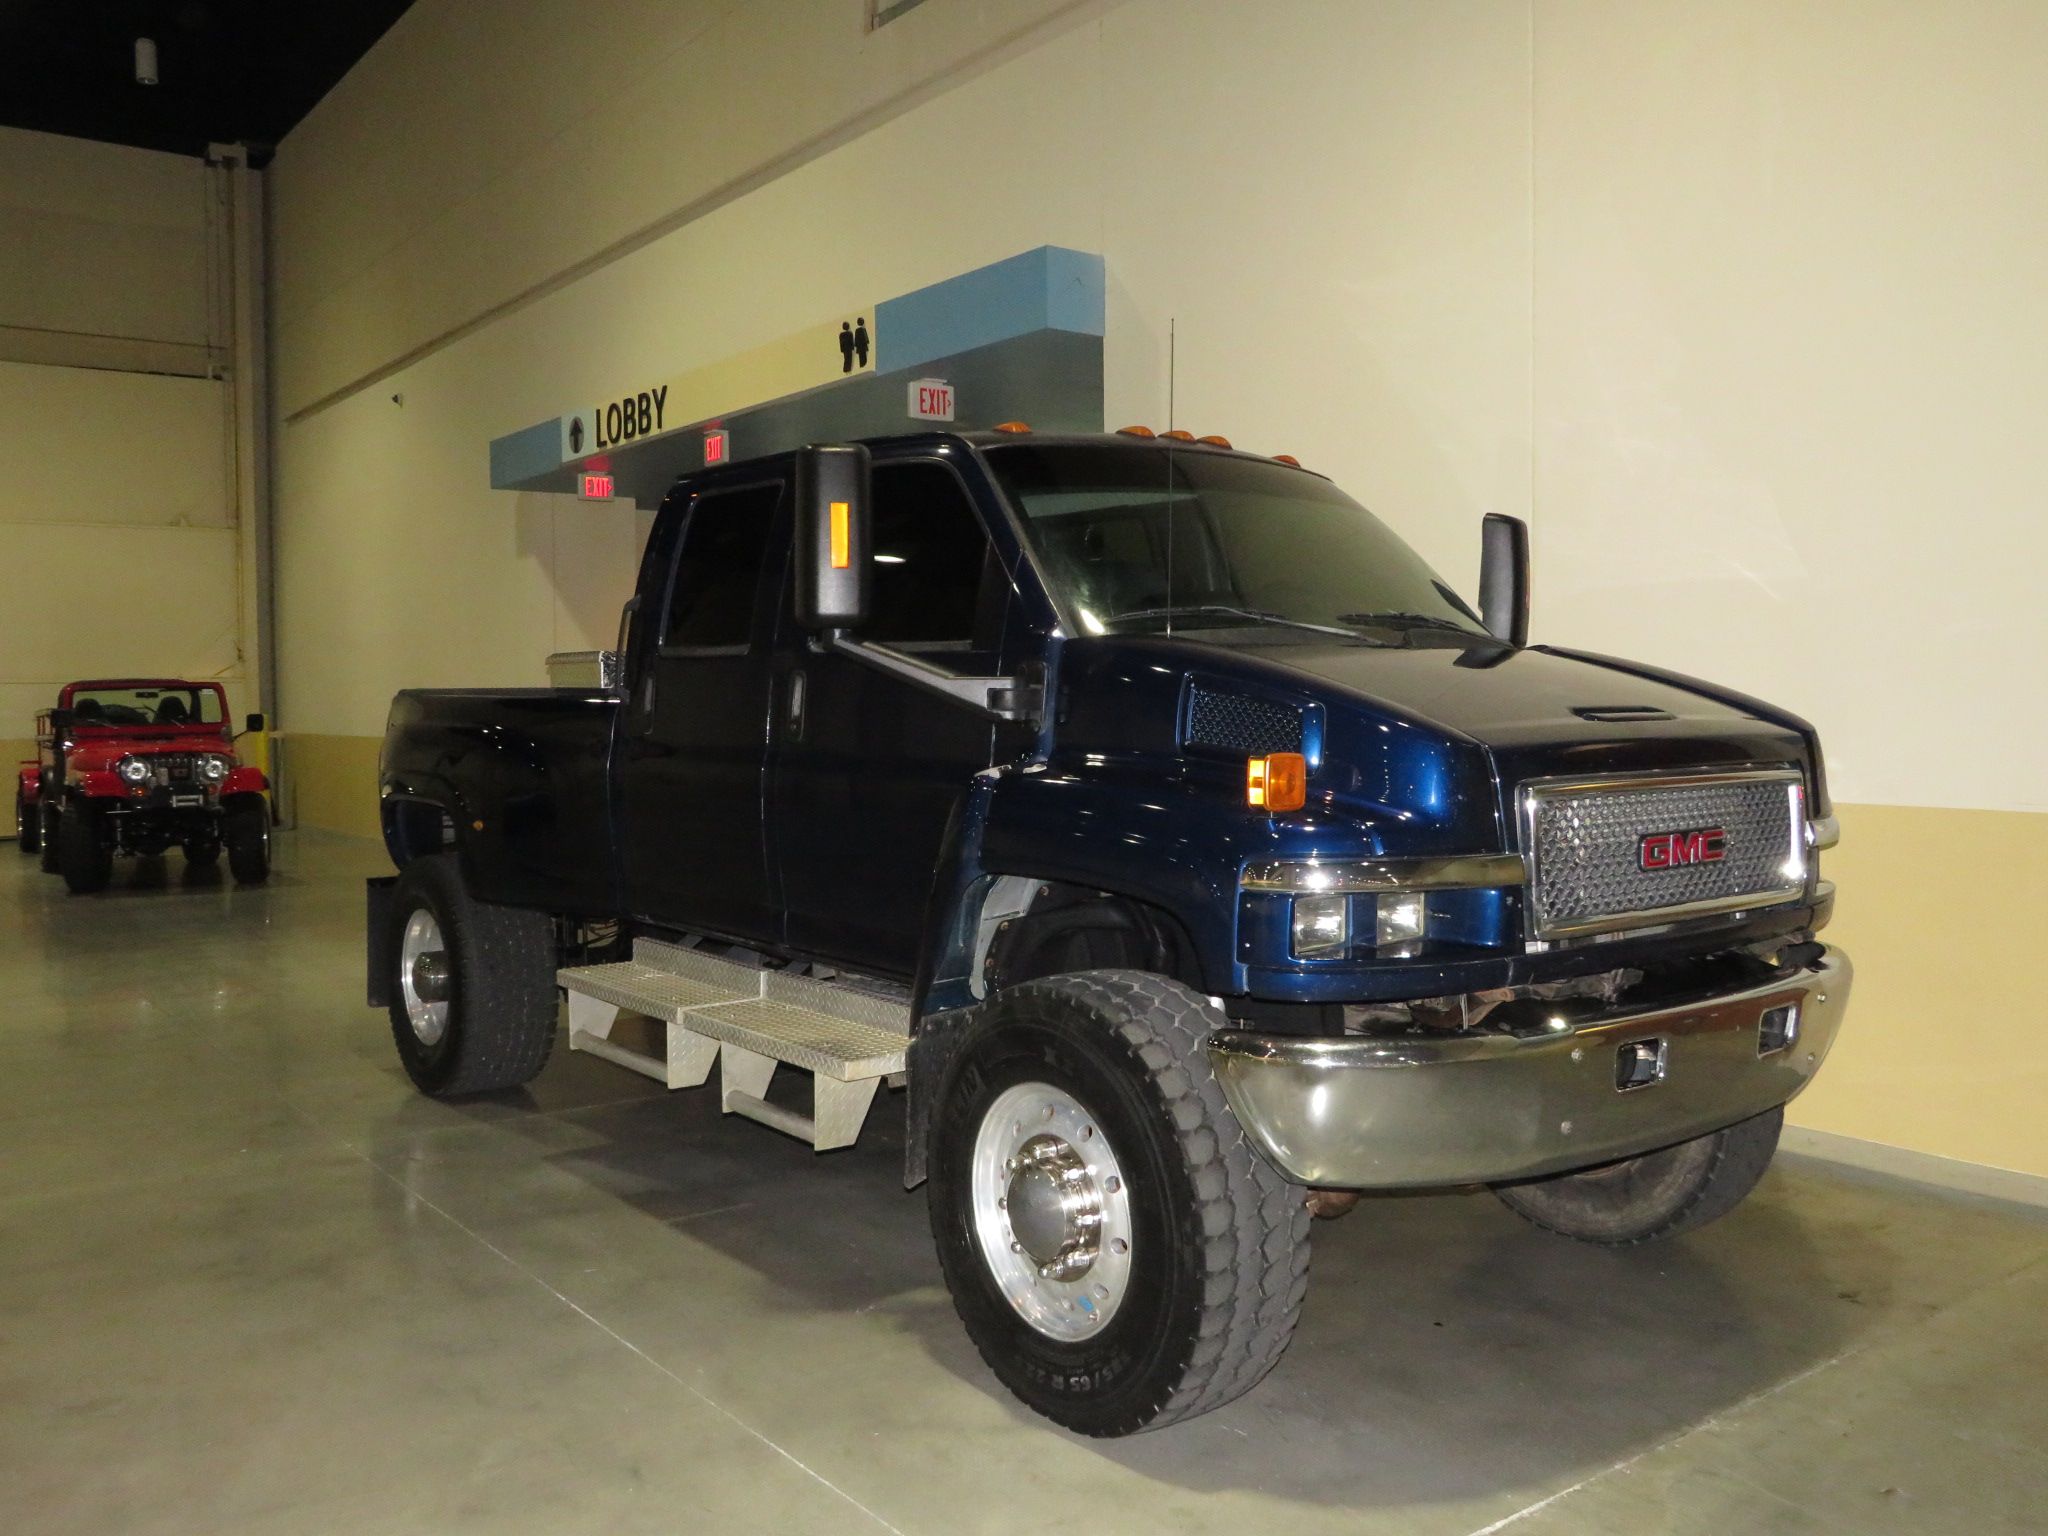 3rd Image of a 2008 GMC C4500 C